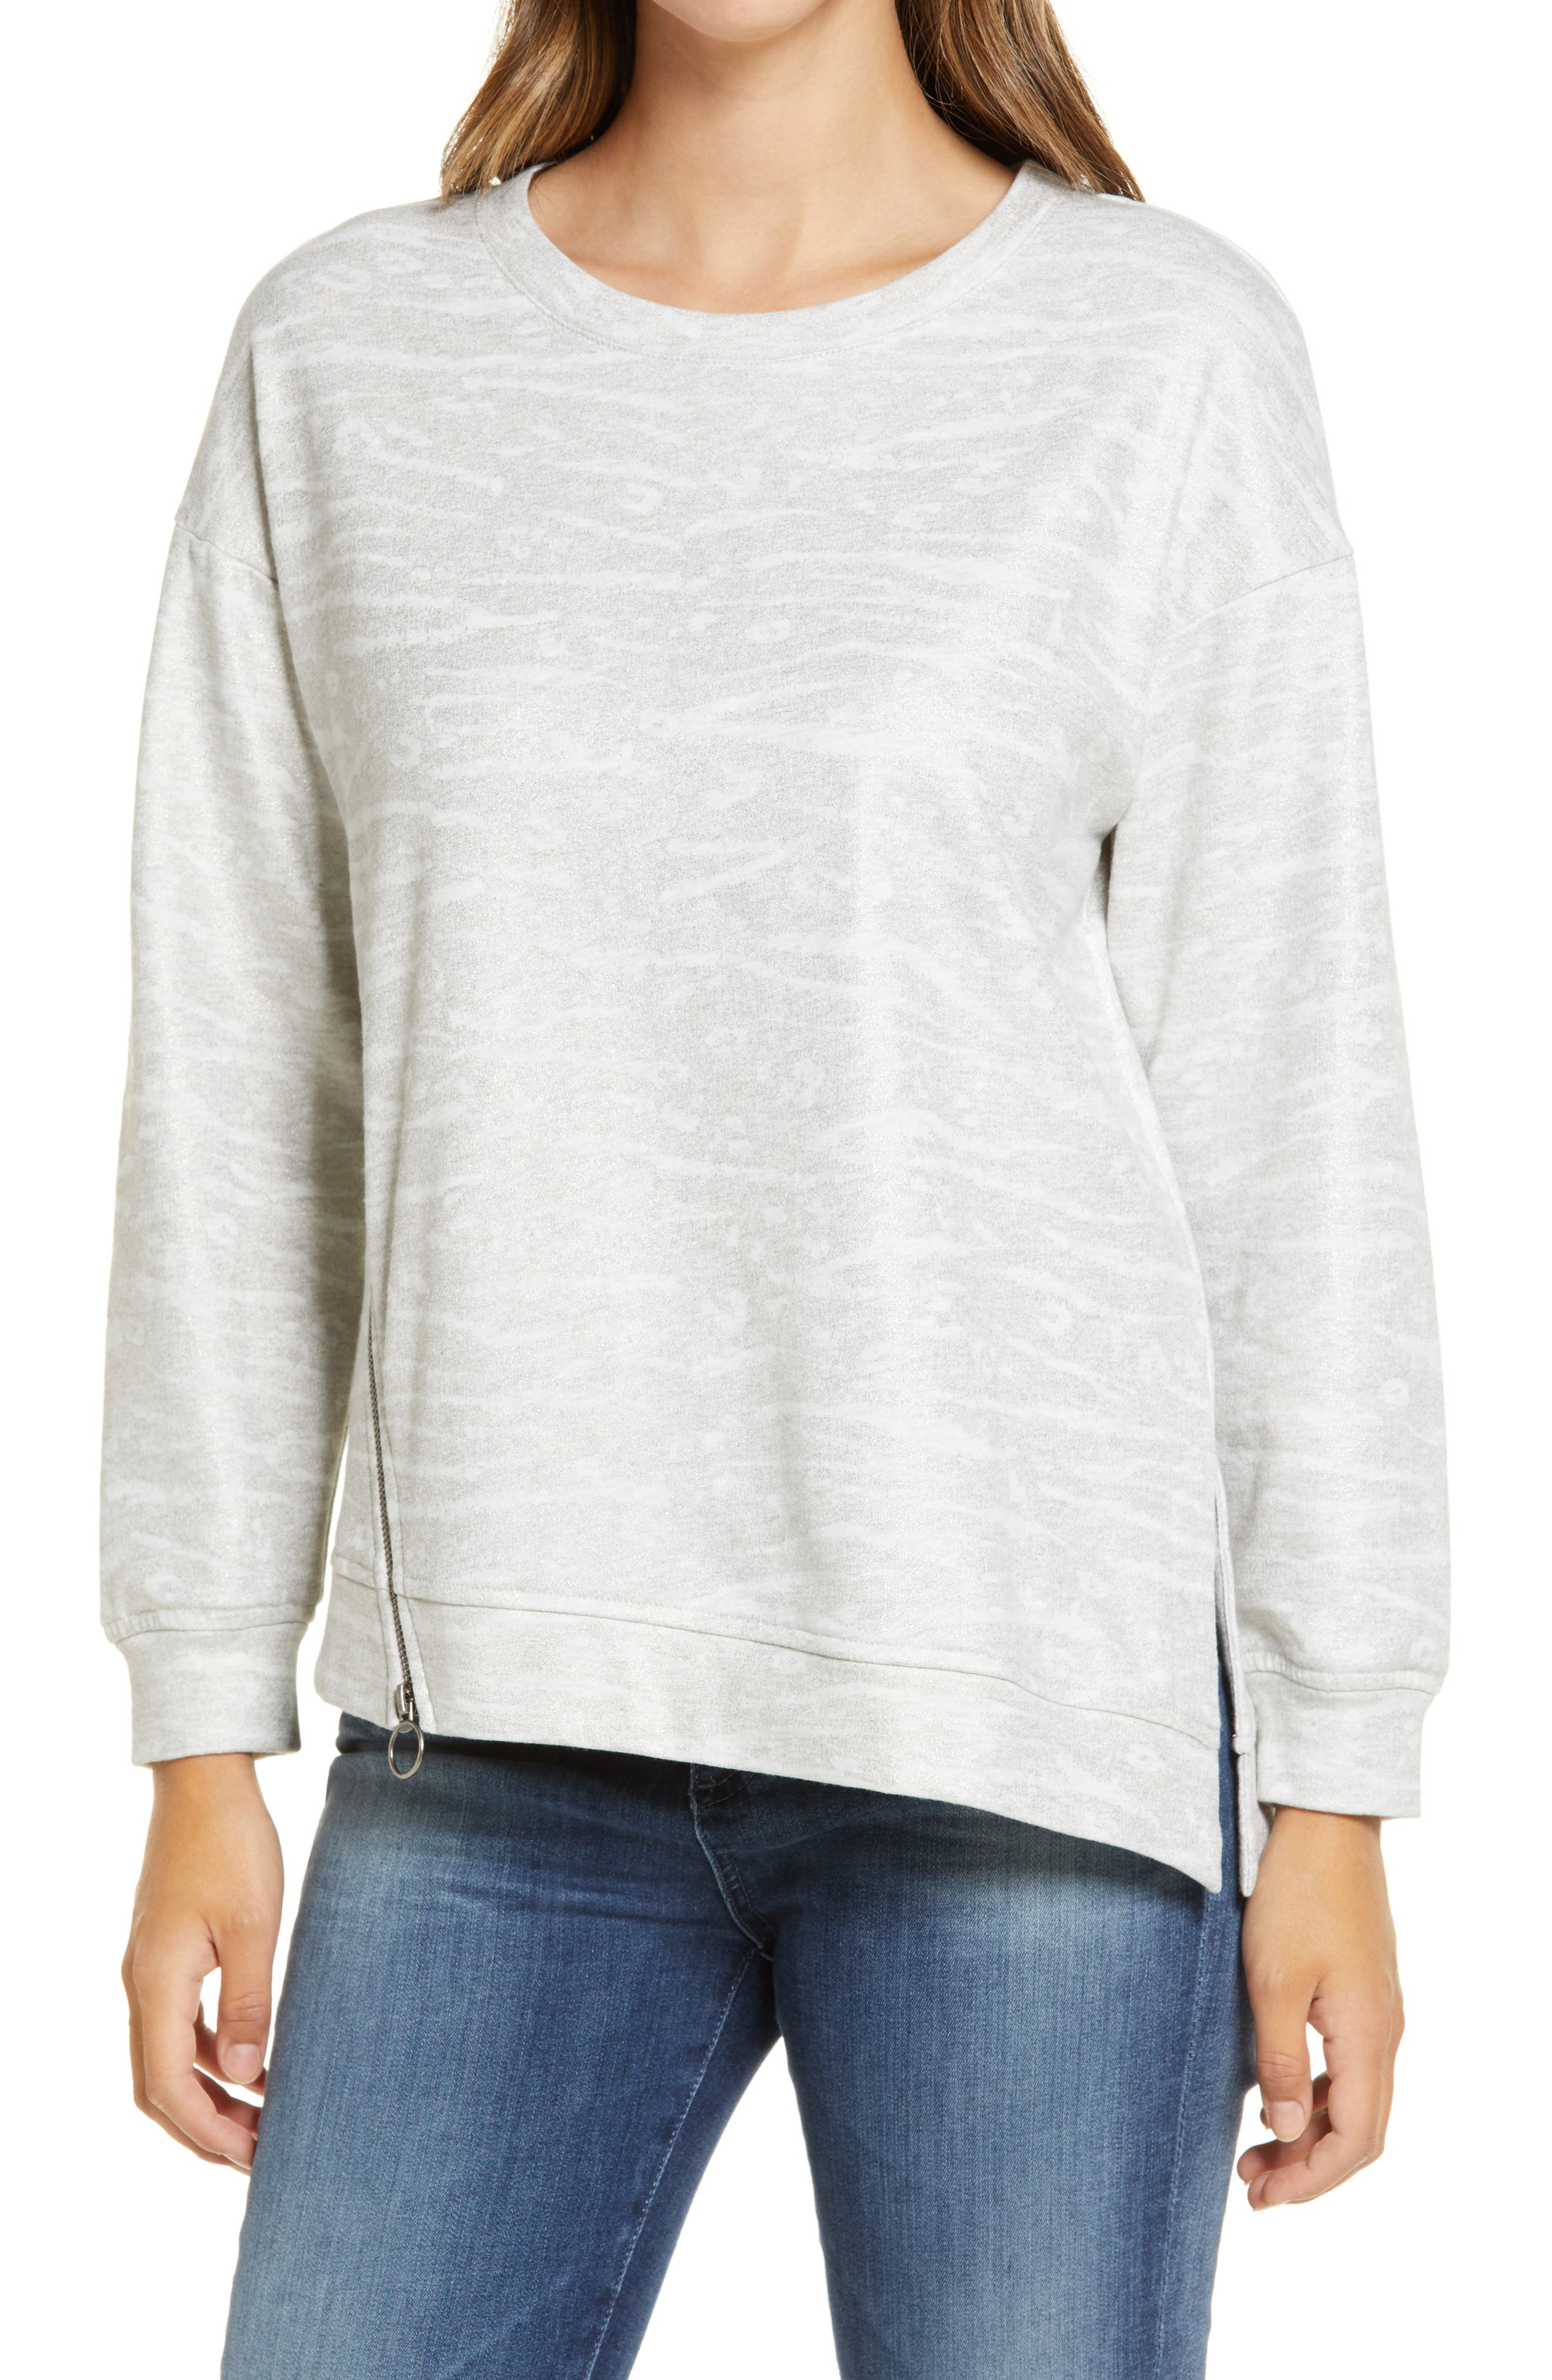 Shimmering animal stripes enliven this slouchy pullover framed by dropped-shoulder sleeves. Style Name: Wit & Wisdom Animal Foil Print Sweatshirt (Nordstrom Exclusive). Style Number: 6112794. Available in stores.